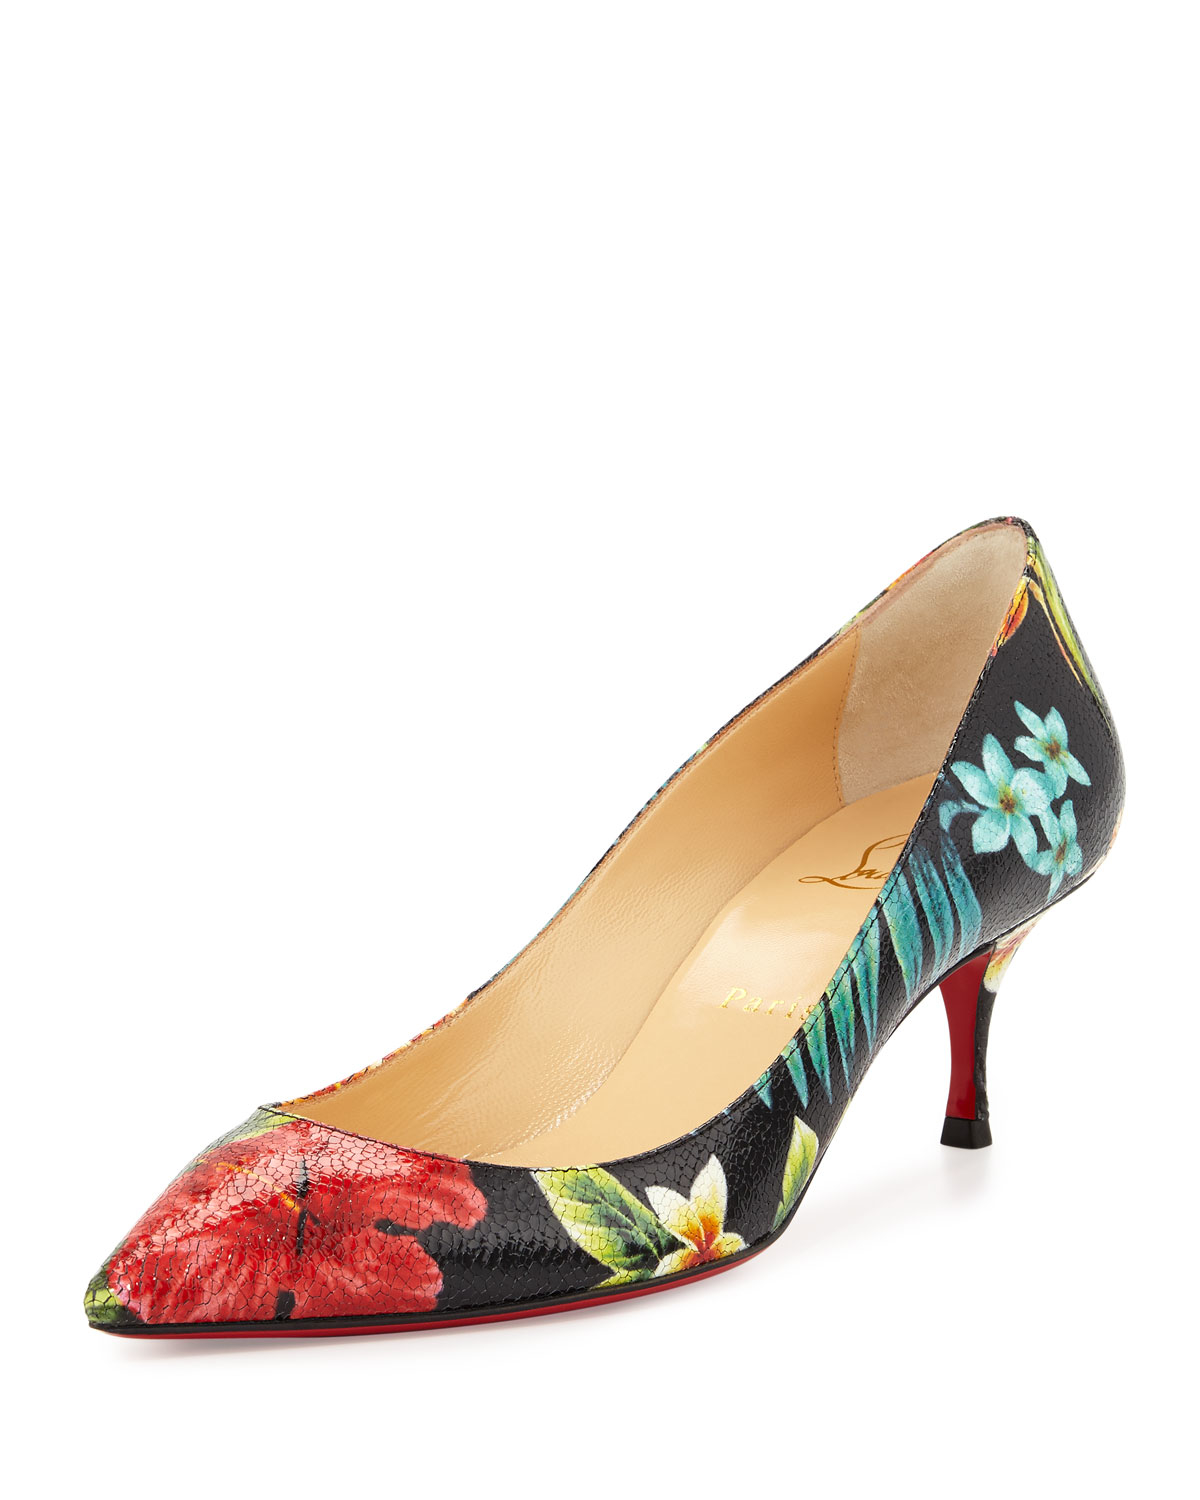 Christian louboutin Pigalle Follies Floral 55mm Red Sole Pump in ...